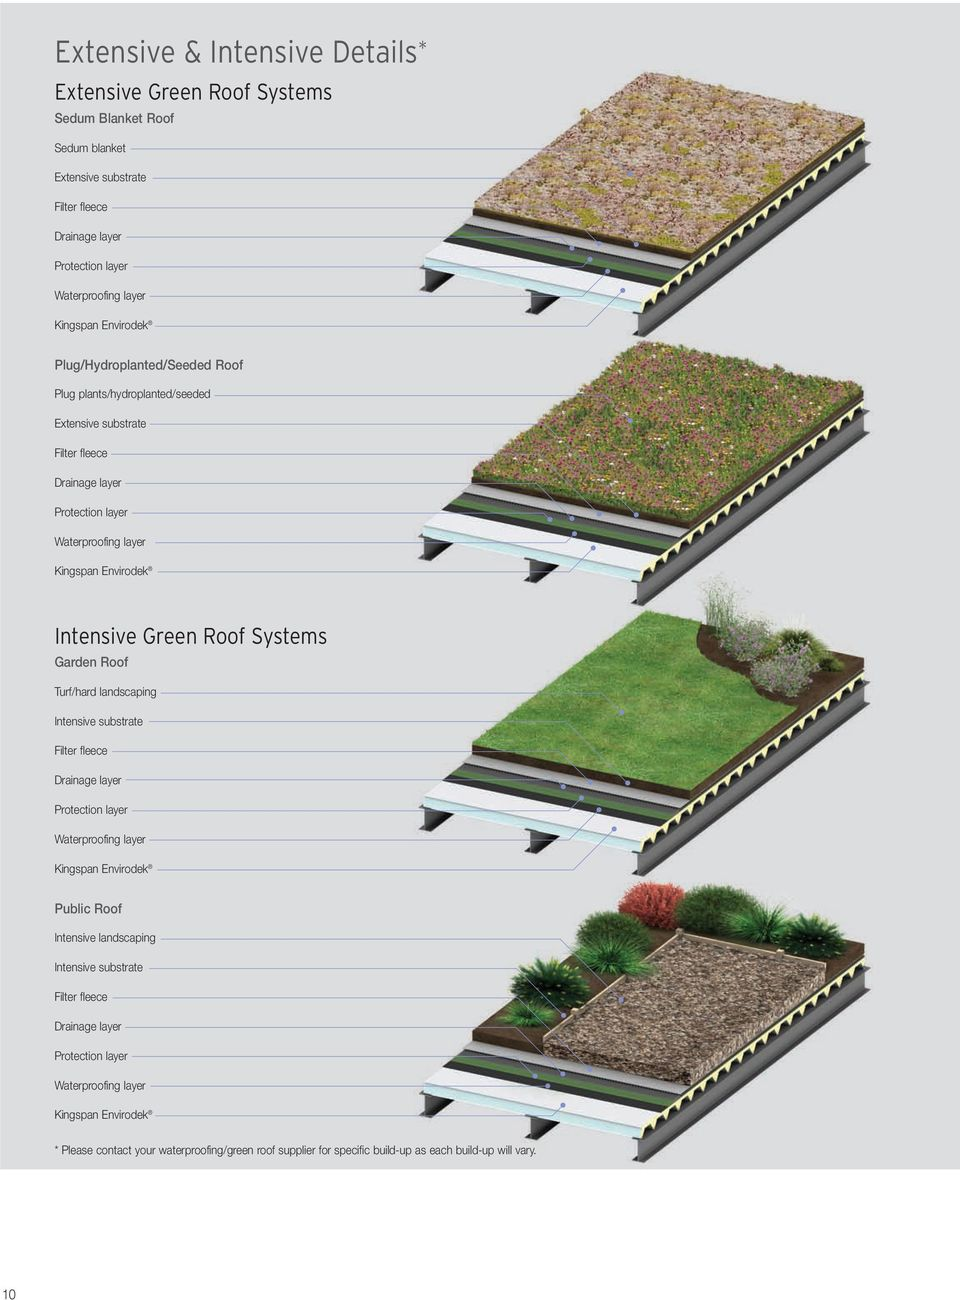 Roof Systems Garden Roof Turf/hard landscaping Intensive substrate Filter fleece Drainage layer Protection layer Waterproofing layer Envirodek Public Roof Intensive landscaping Intensive